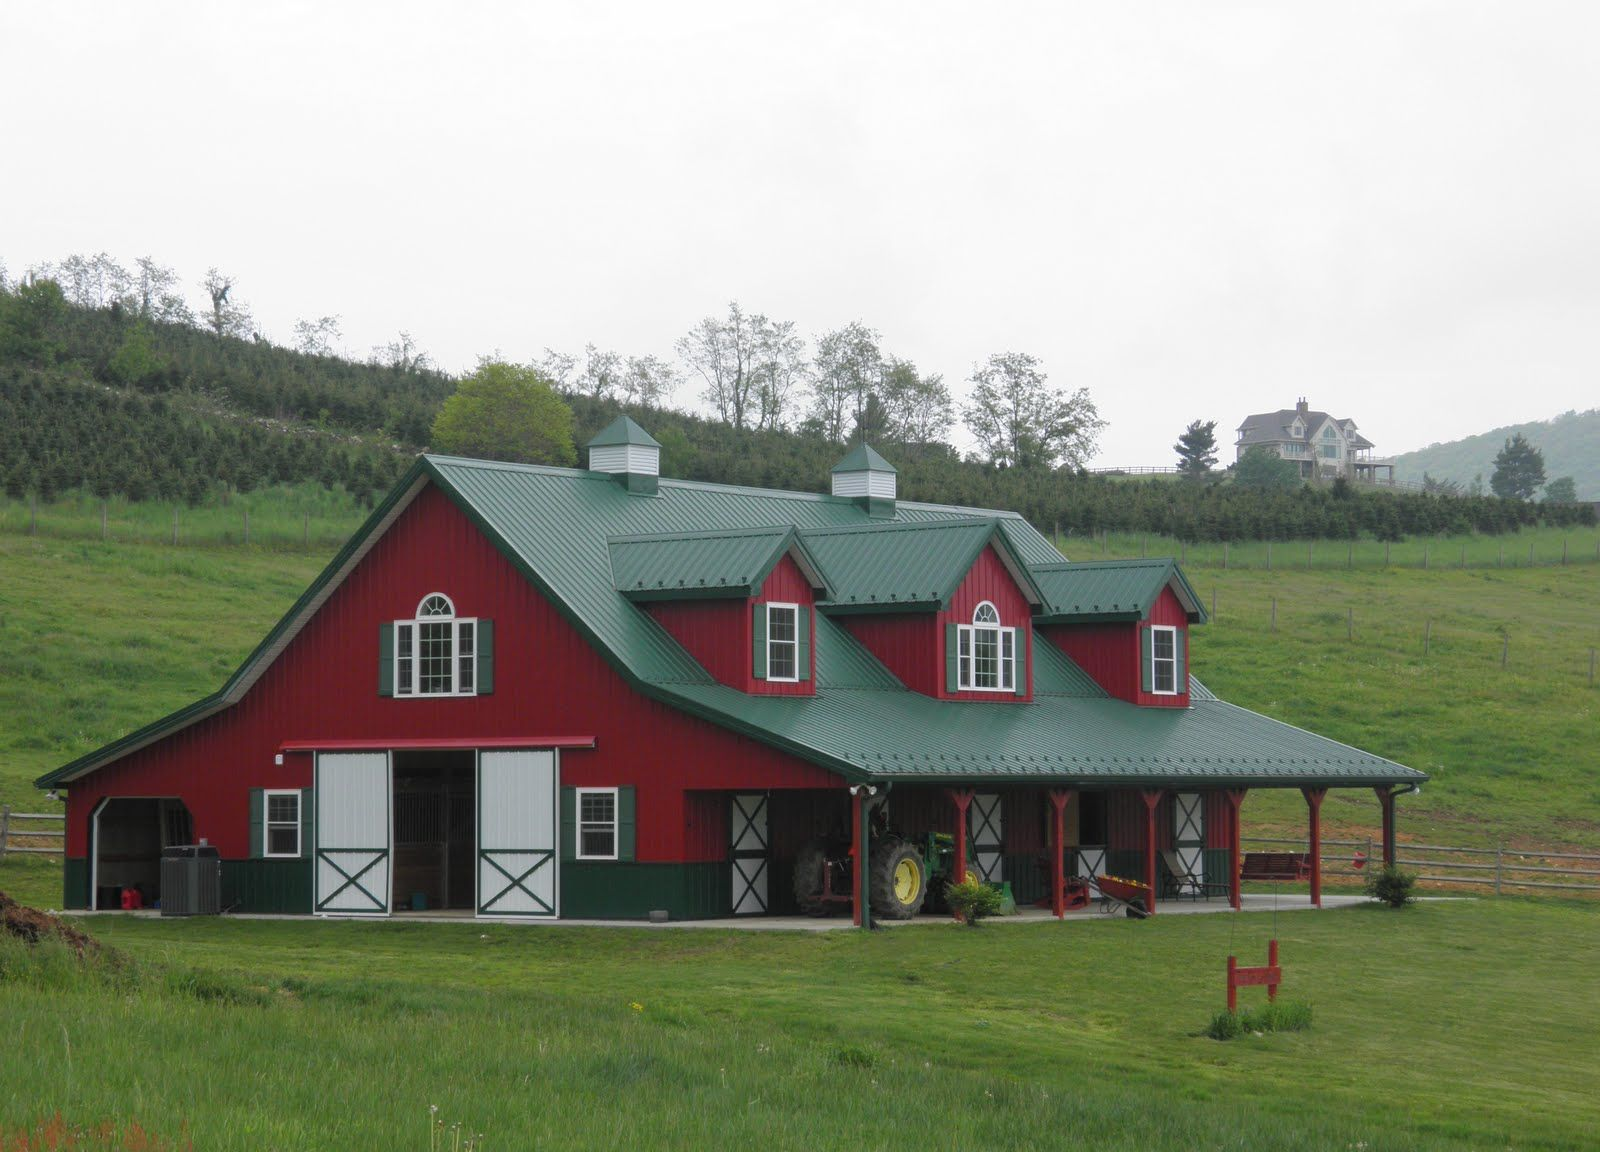 House that looks like red barn images at home in the for House that looks like a barn